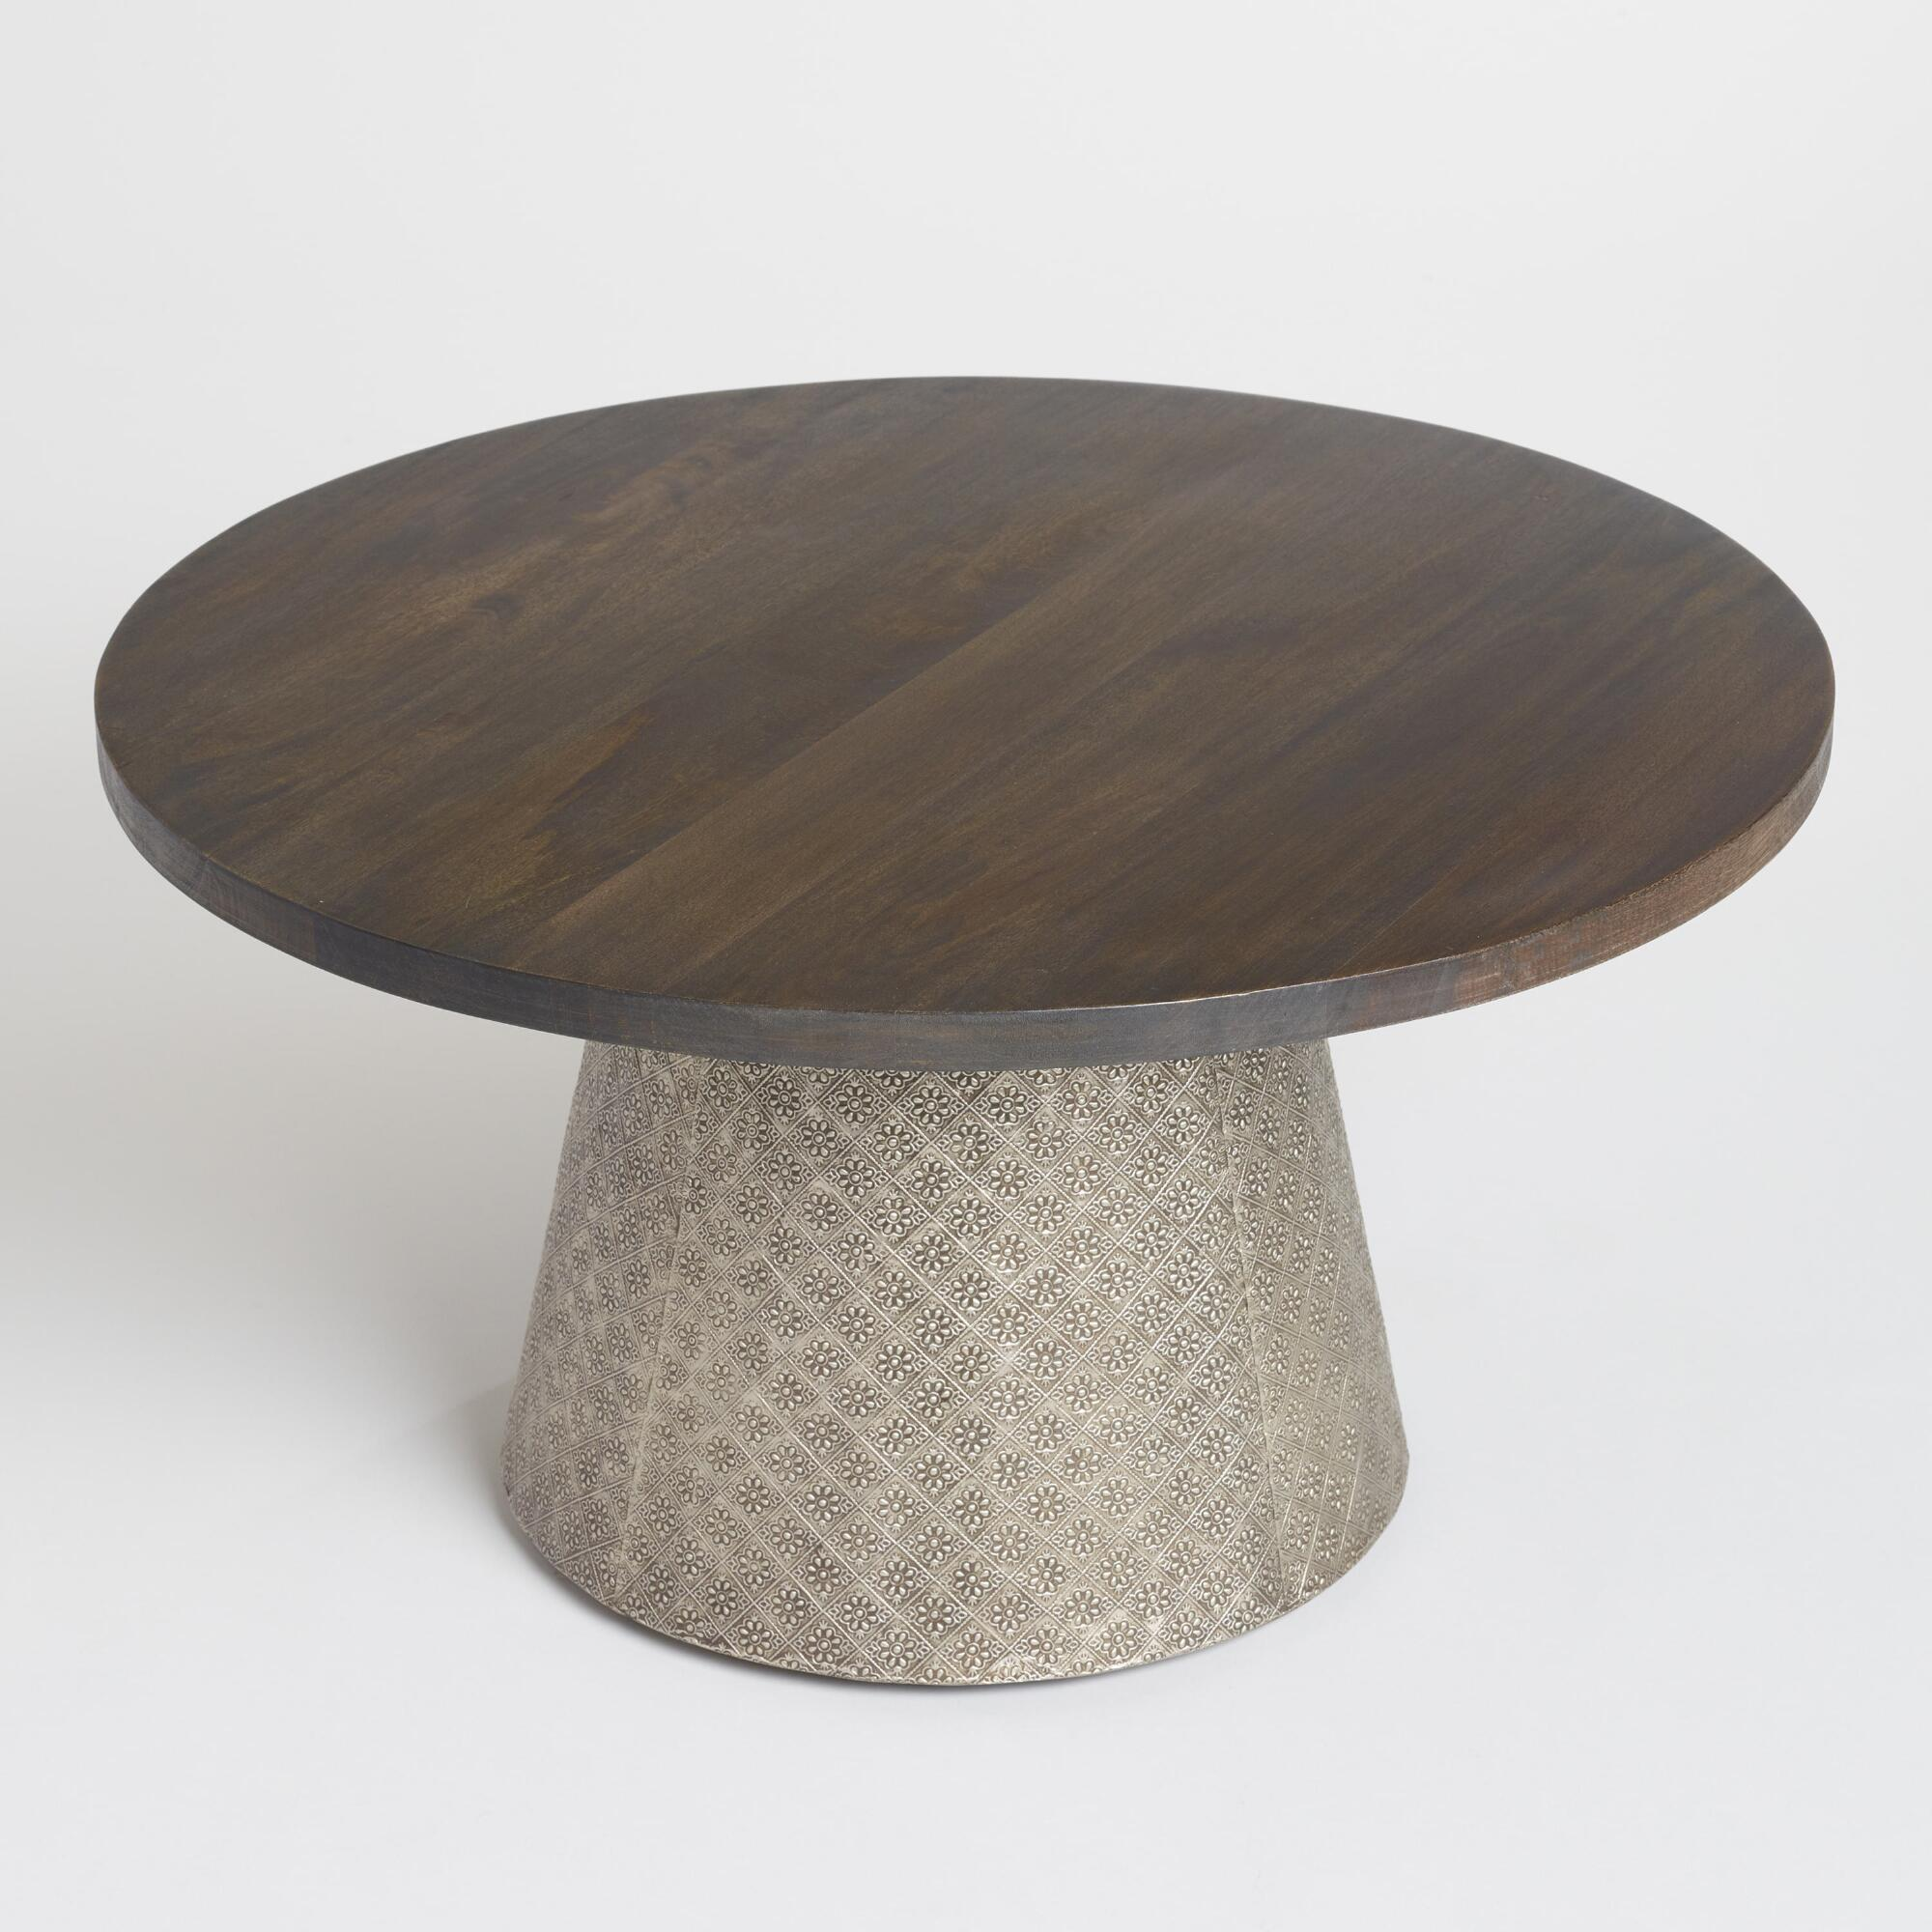 coffee tables end accent world market iipsrv fcgi outdoor mosaic stone table round wood and embossed metal kiran folding glass black lamp for living room steel hairpin legs washer